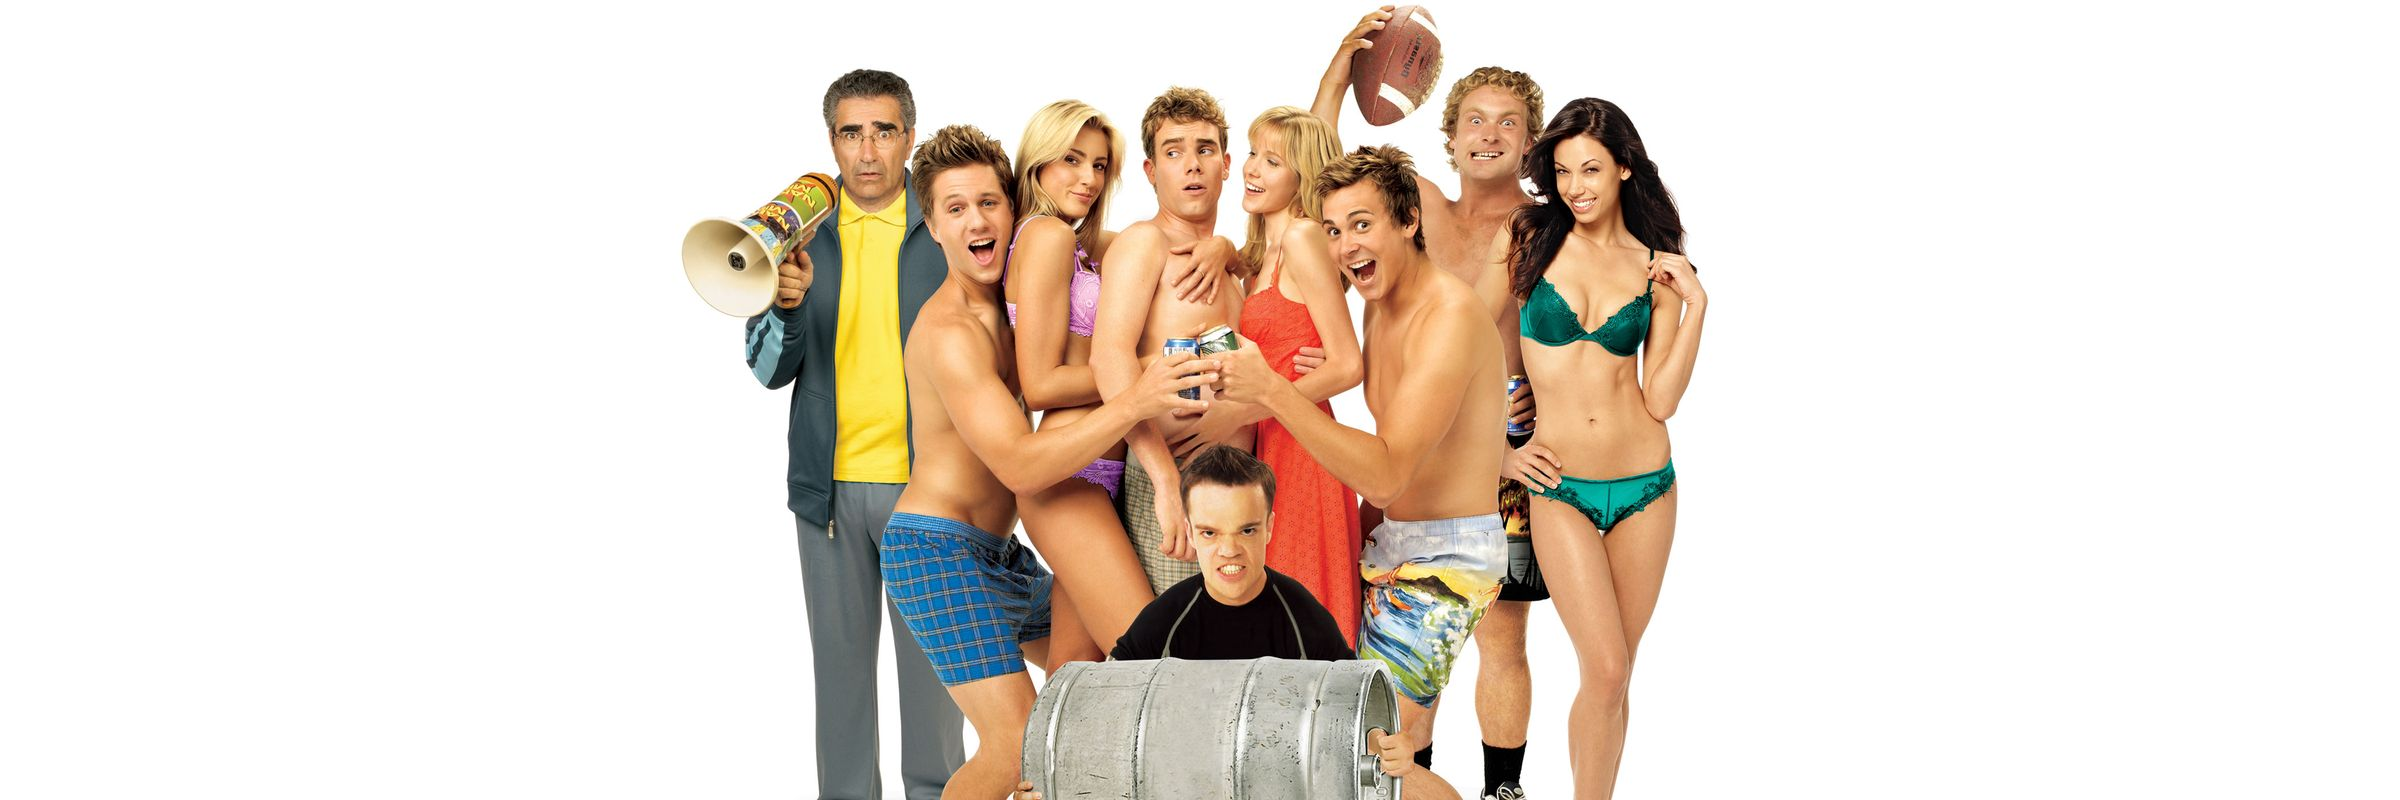 American Pie Naked Mile Hot american pie presents: the naked mile (unrated) | full movie